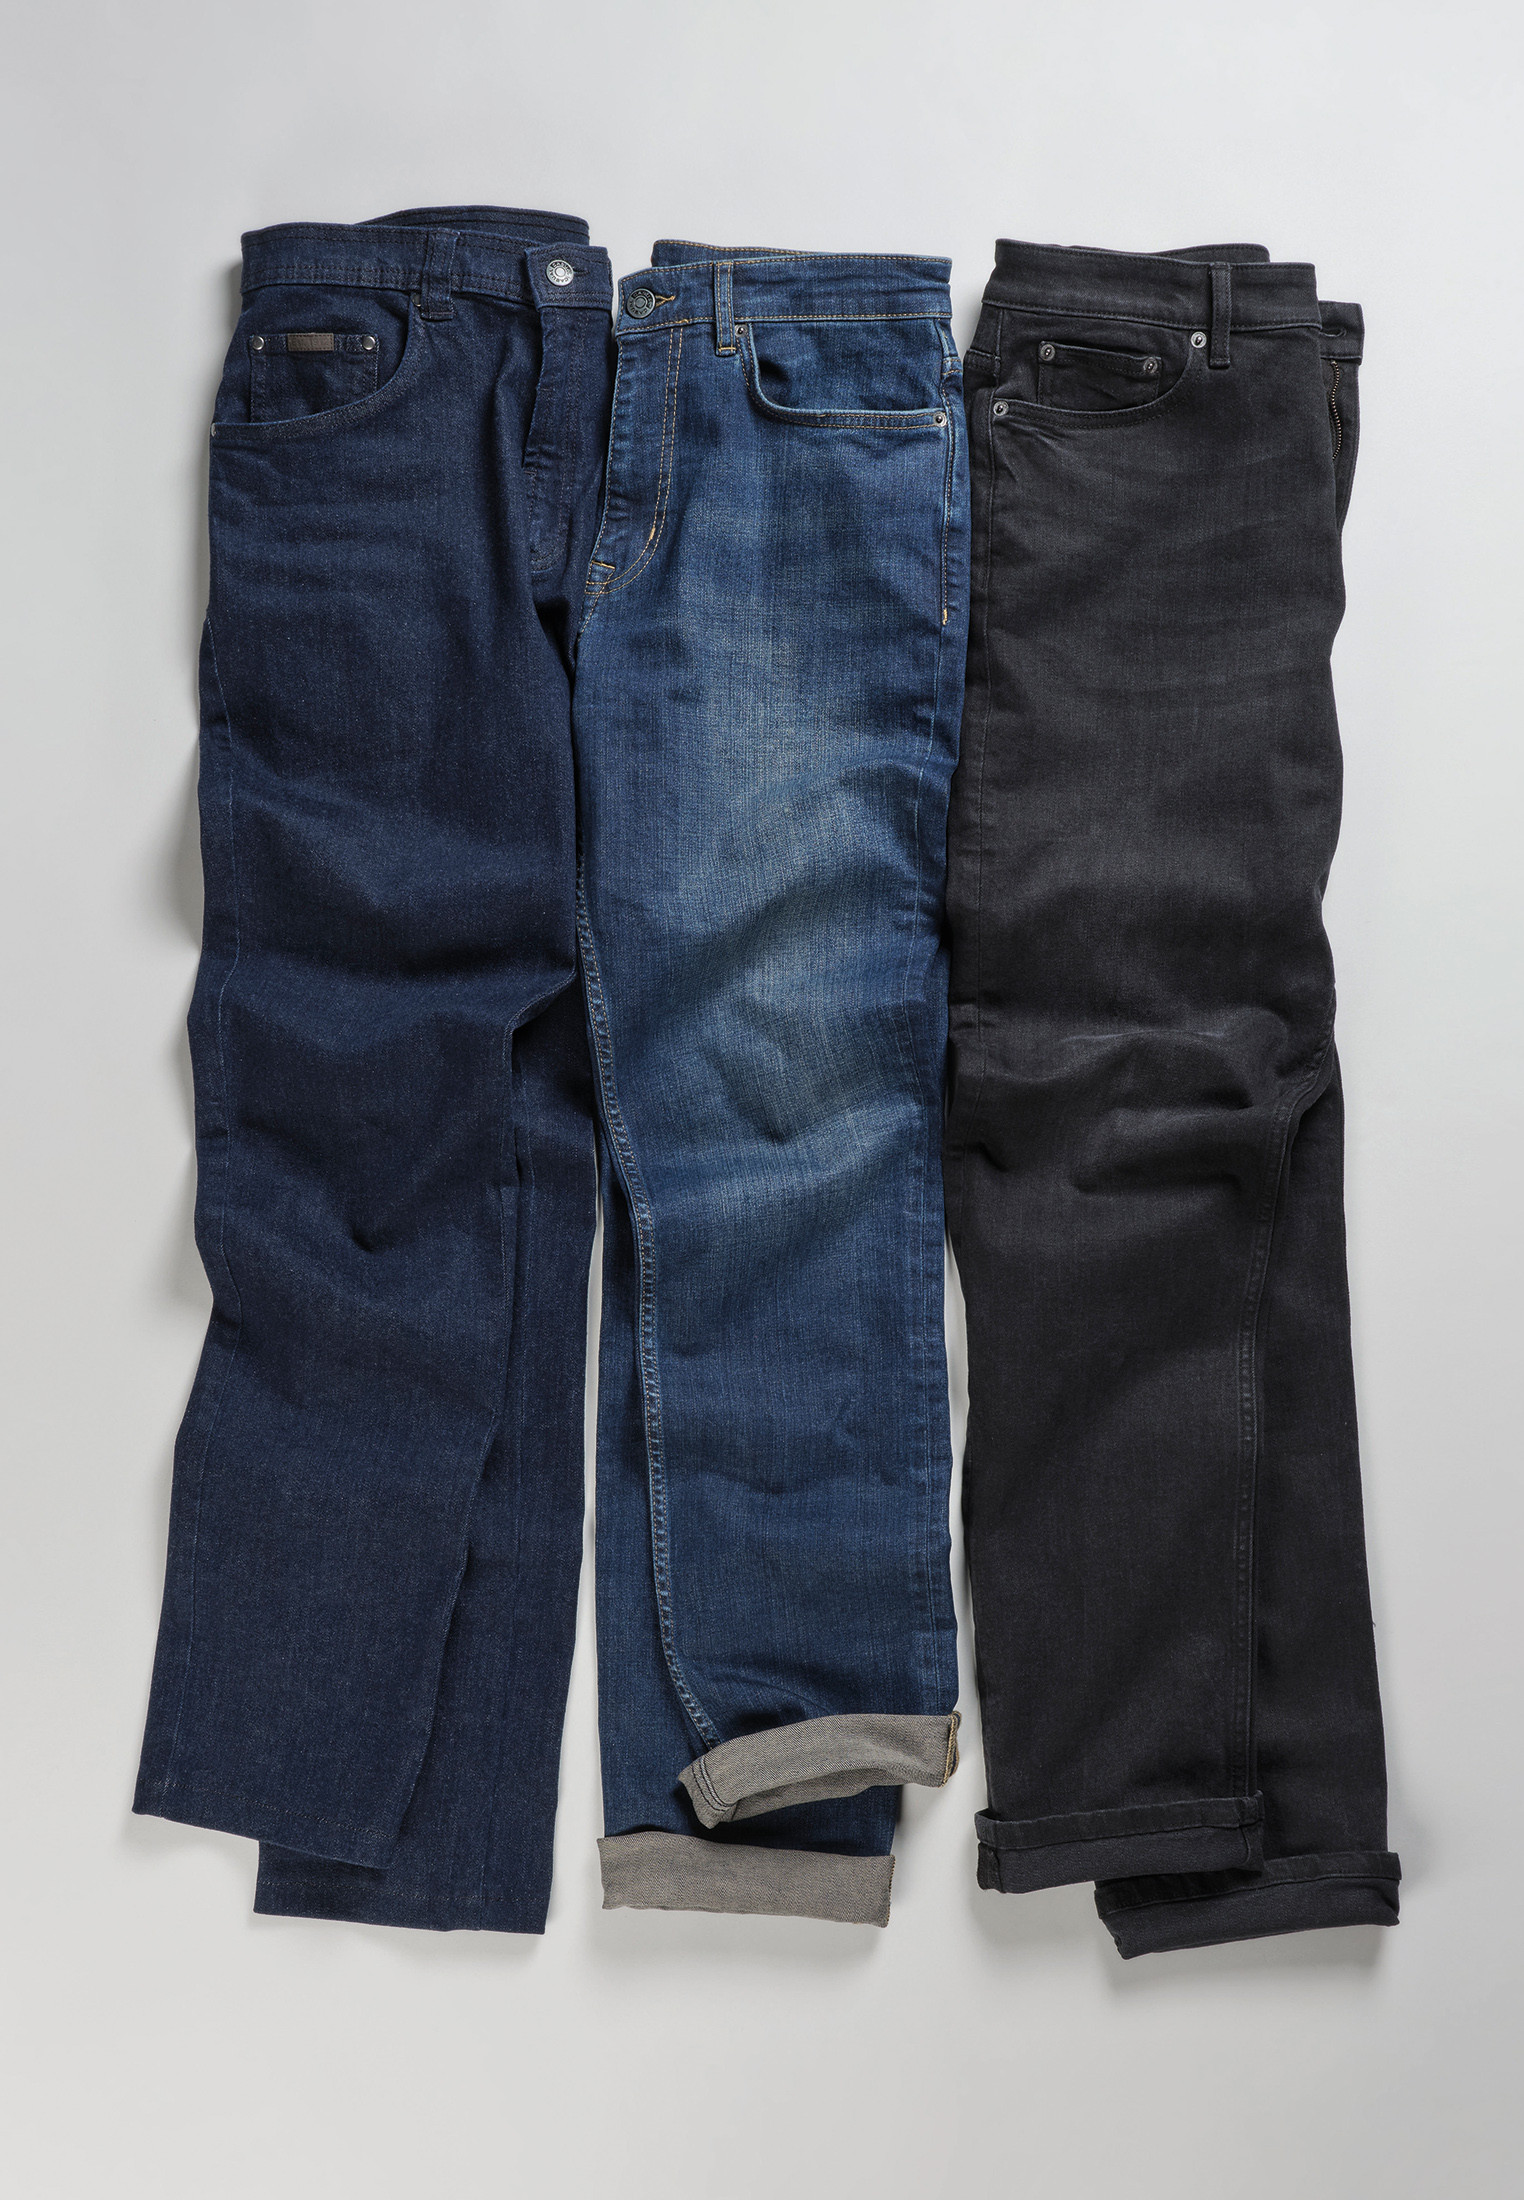 Black Classic and Tailored Fit Denim Jeans